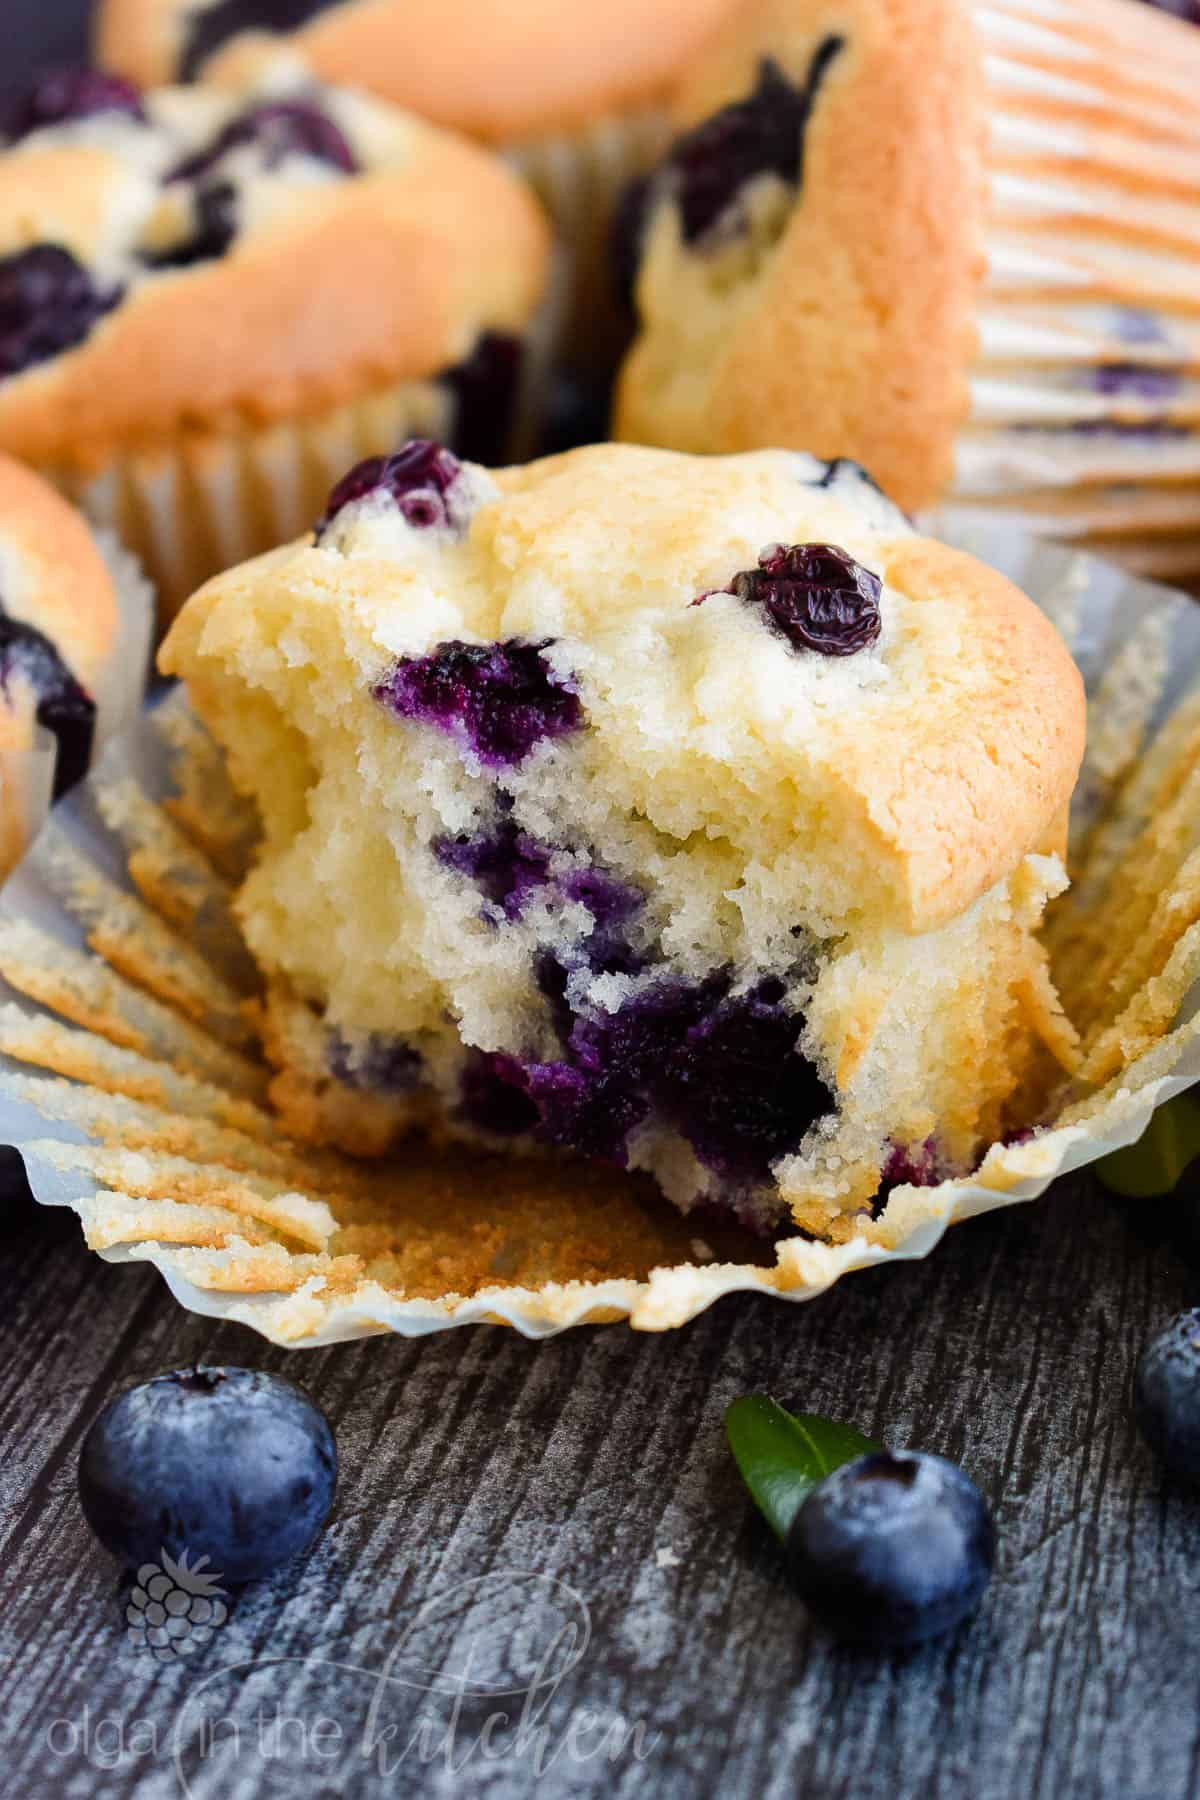 Sour Cream Blueberry Muffins Olga In The Kitchen Recipe In 2020 Blue Berry Muffins Sour Cream Blueberry Muffins Mini Blueberry Muffins